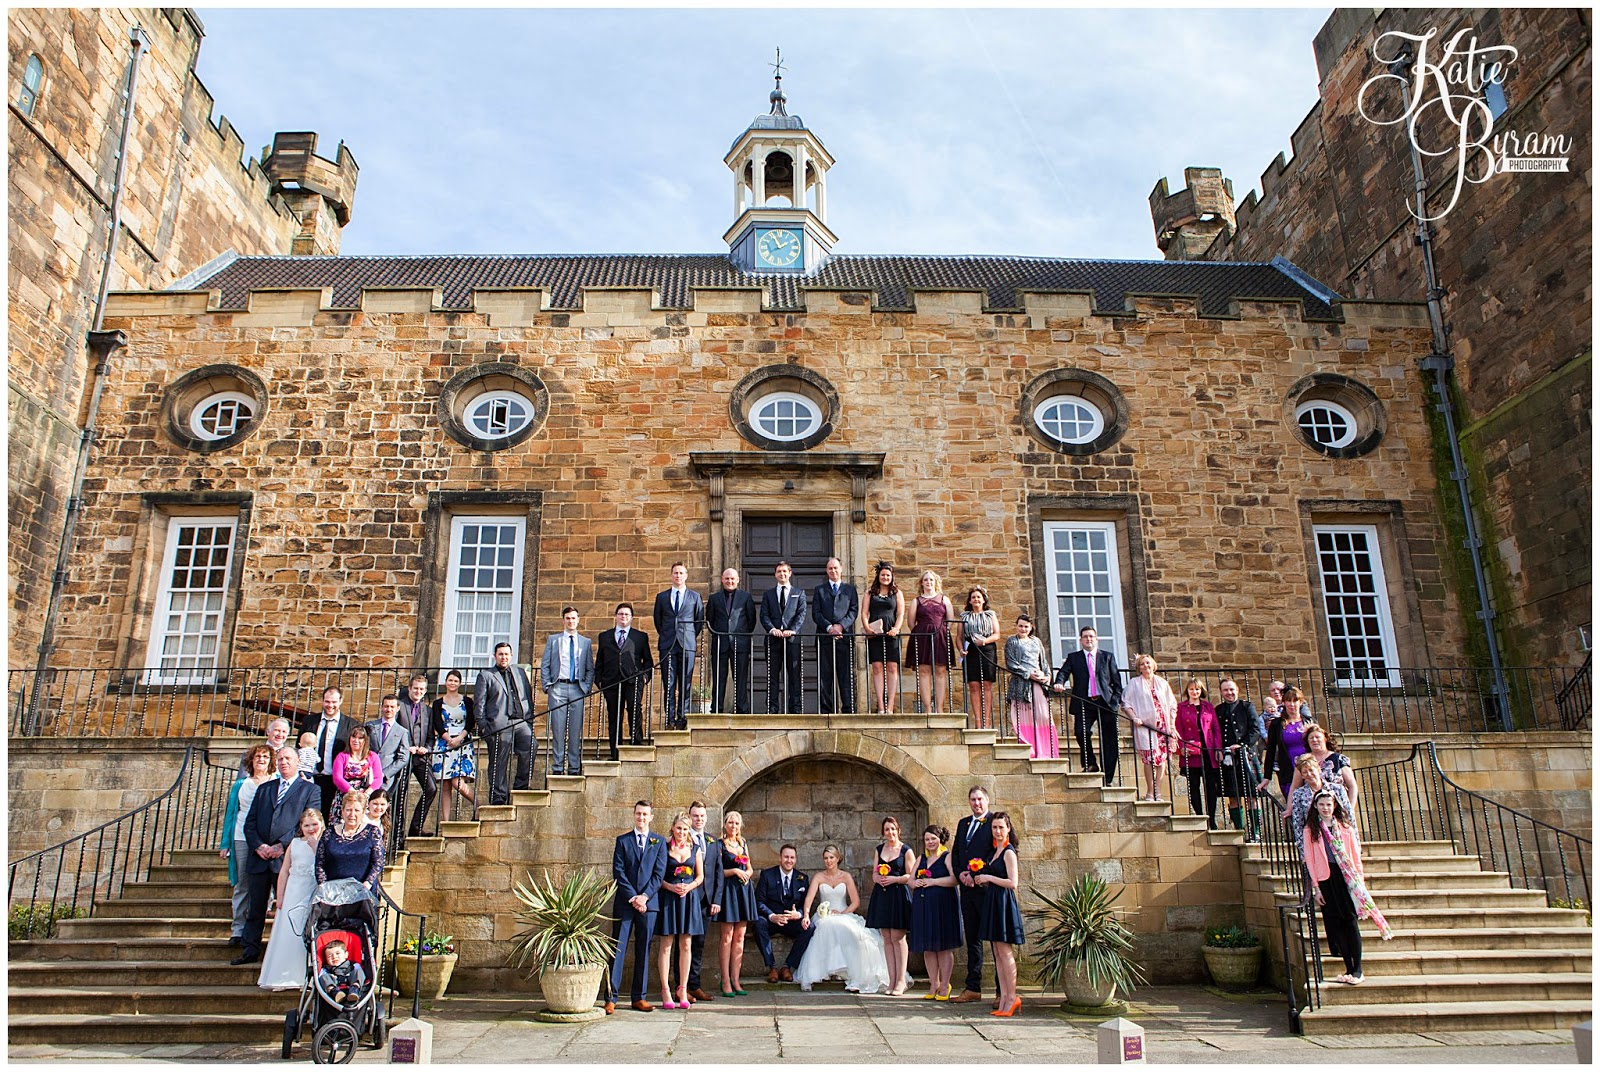 group photo at wedding, lumley castle wedding, durham wedding, katie byram photography, diane harbridge, carli peirson make up, the big event make up, wedding venues north east, northumberland wedding, quirky wedding photography, travel themed wedding, castle wedding north east, newcastle wedding, chester-le-street